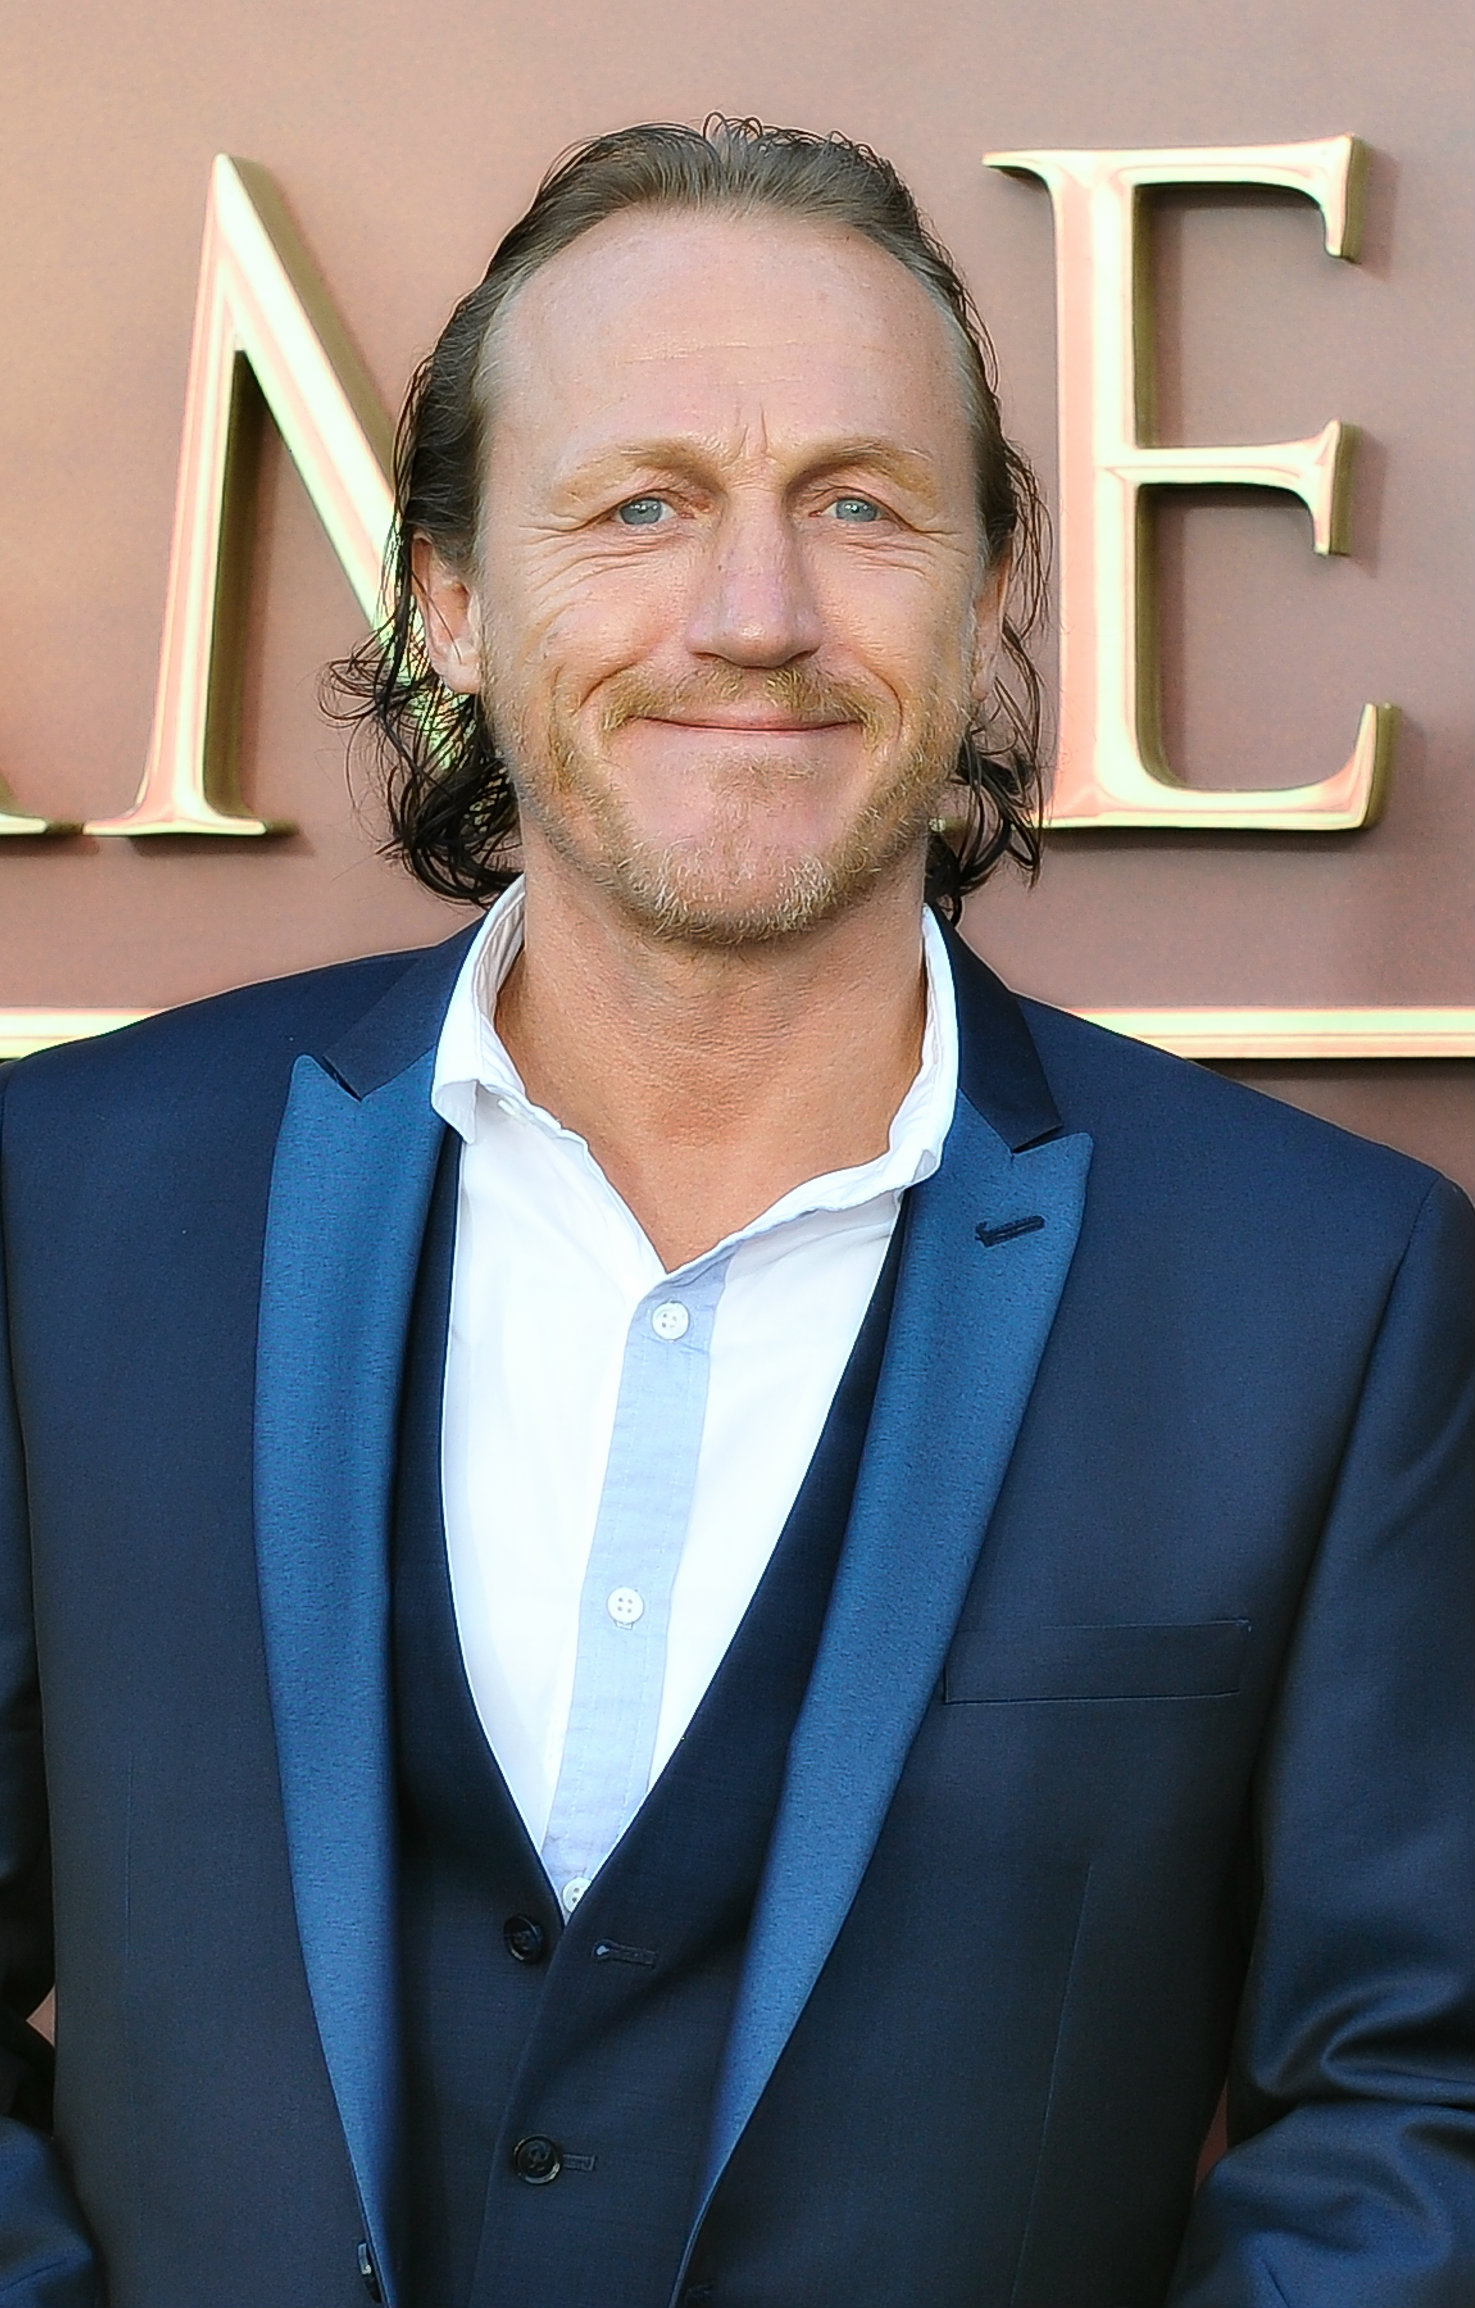 jerome flynn actor turned singerjerome flynn actor turned singer, jerome flynn game of thrones, jerome flynn height, jerome flynn imdb, jerome flynn football, jerome flynn singing, jerome flynn interview, jerome flynn and johnny flynn, jerome flynn witcher 3, jerome flynn last of us, jerome flynn instagram, jerome flynn, jerome flynn soldier soldier, jerome flynn twitter, jerome flynn ripper street, jerome flynn unchained melody, jerome flynn wiki, jerome flynn music, jerome flynn actor, jerome flynn song